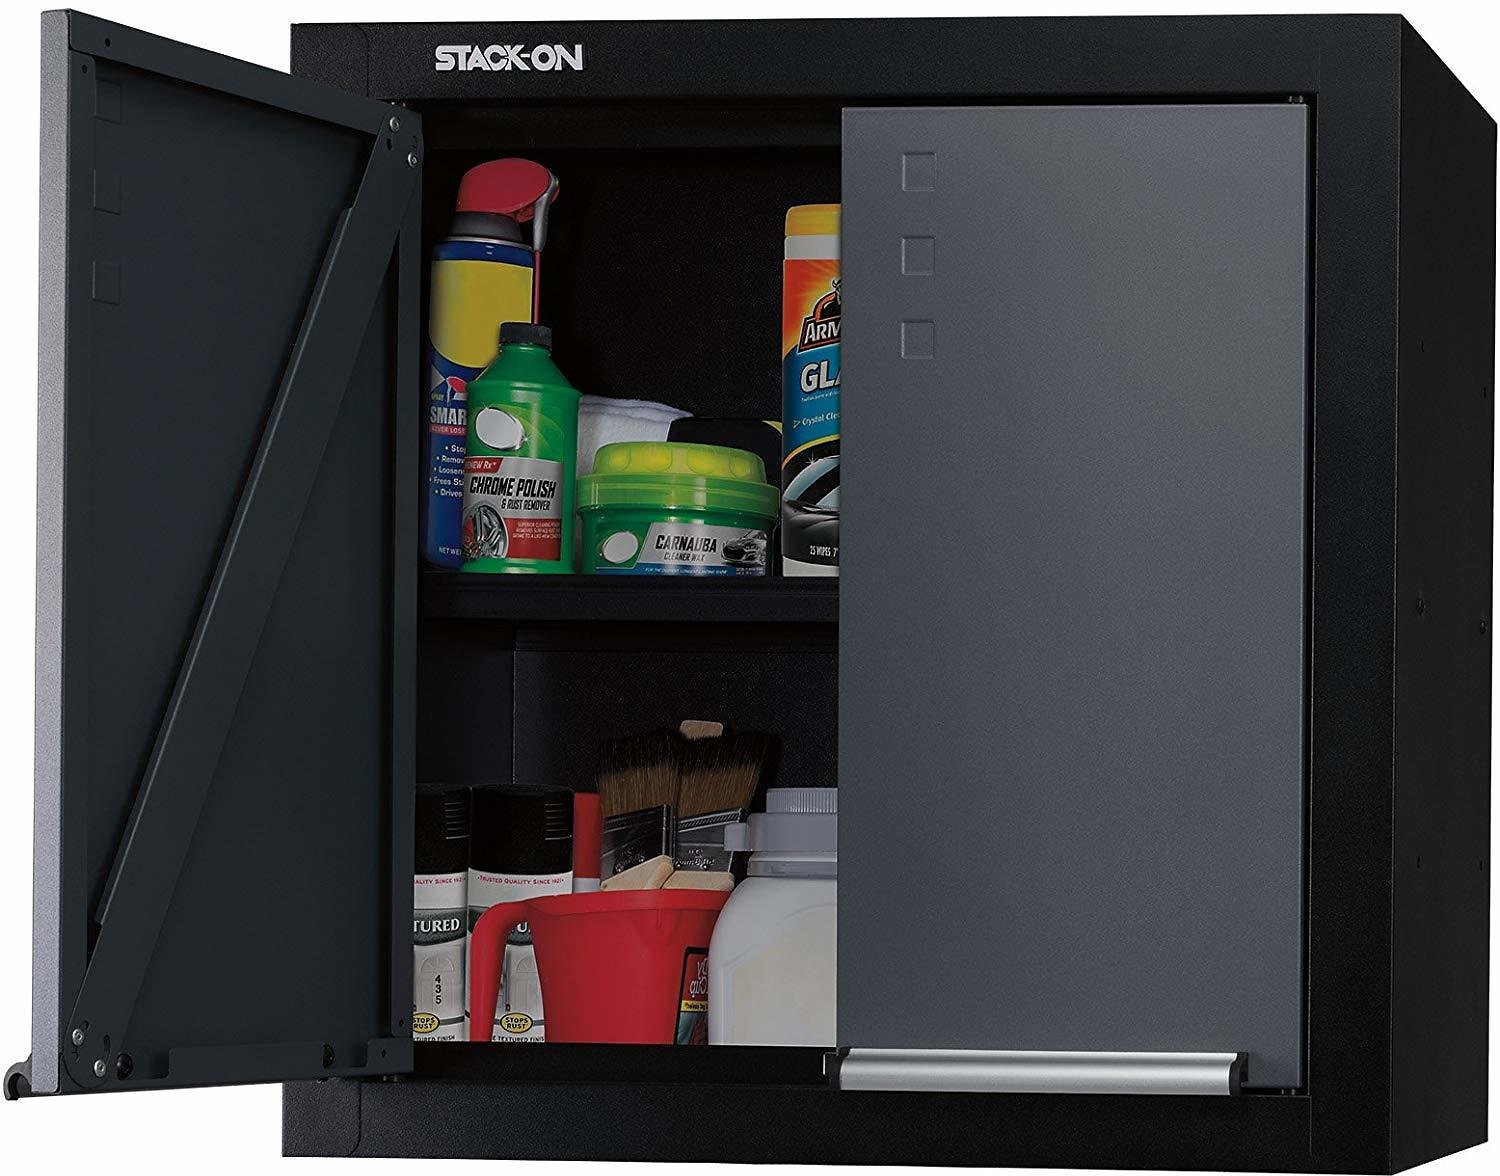 STACK-ON 2-Door, Wall-Mounted, All-Steel Garage Cabinet